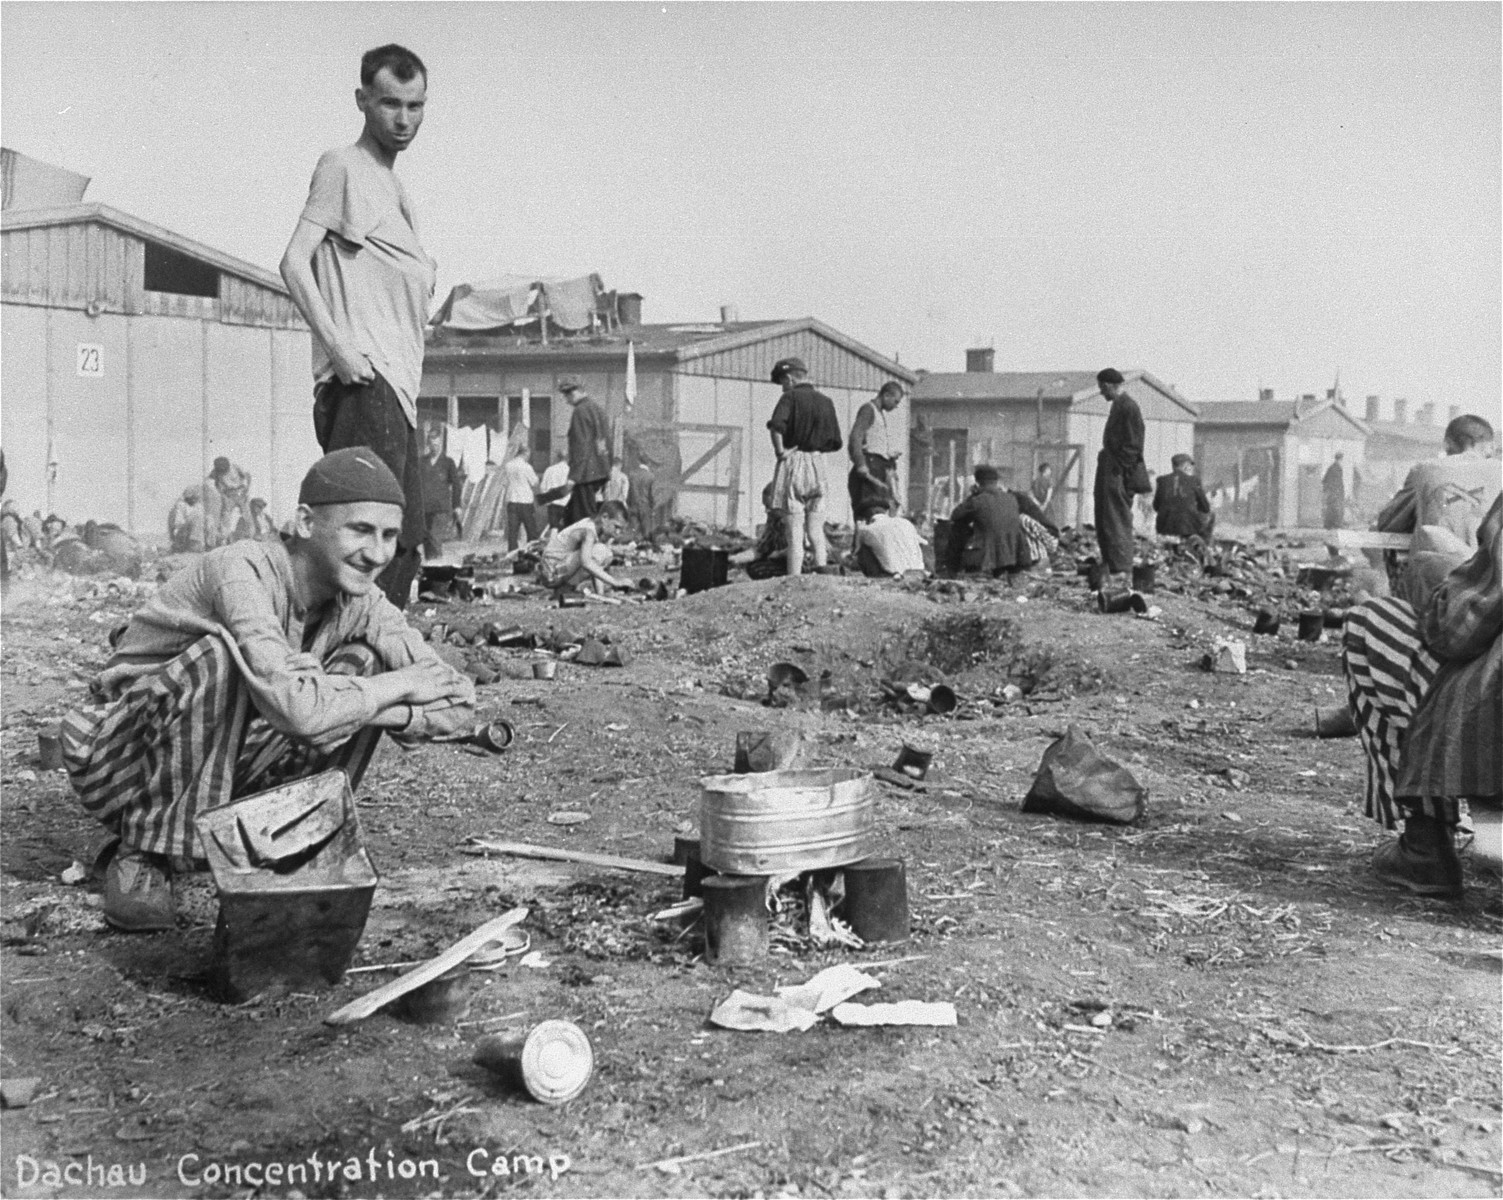 Survivors in Dachau cooking food over open fire.